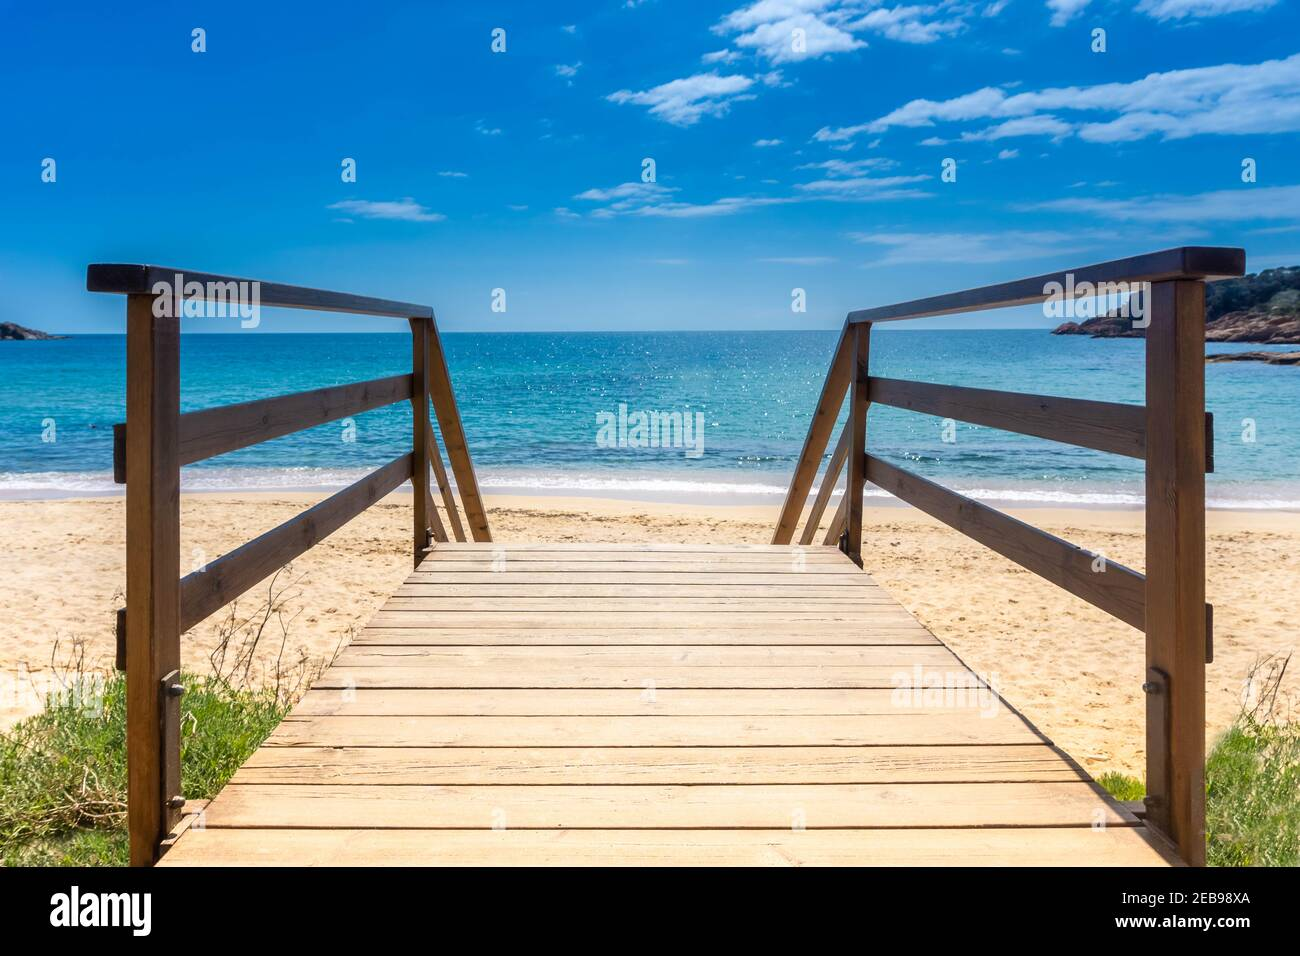 Boardwalk to sandy beach. Wooden walkway over sand to sea. Sunny beach with wooden walk floor. Vacation background. Summer vacation concept. Copy spac Stock Photo